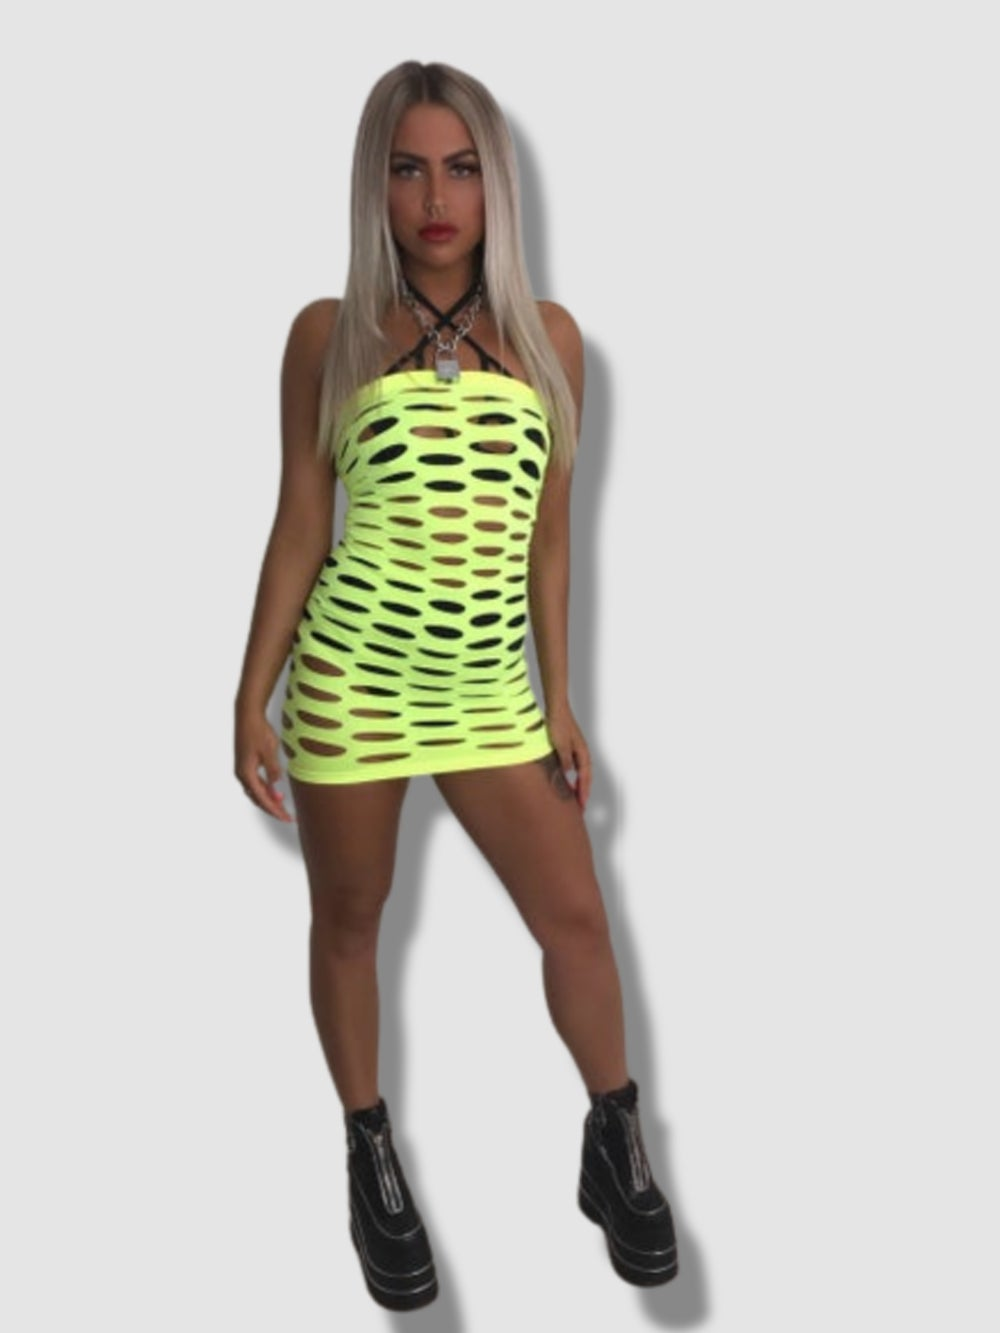 Atomic Blonde neon yellow lime dress WAS 28.00 NOW 10.00!